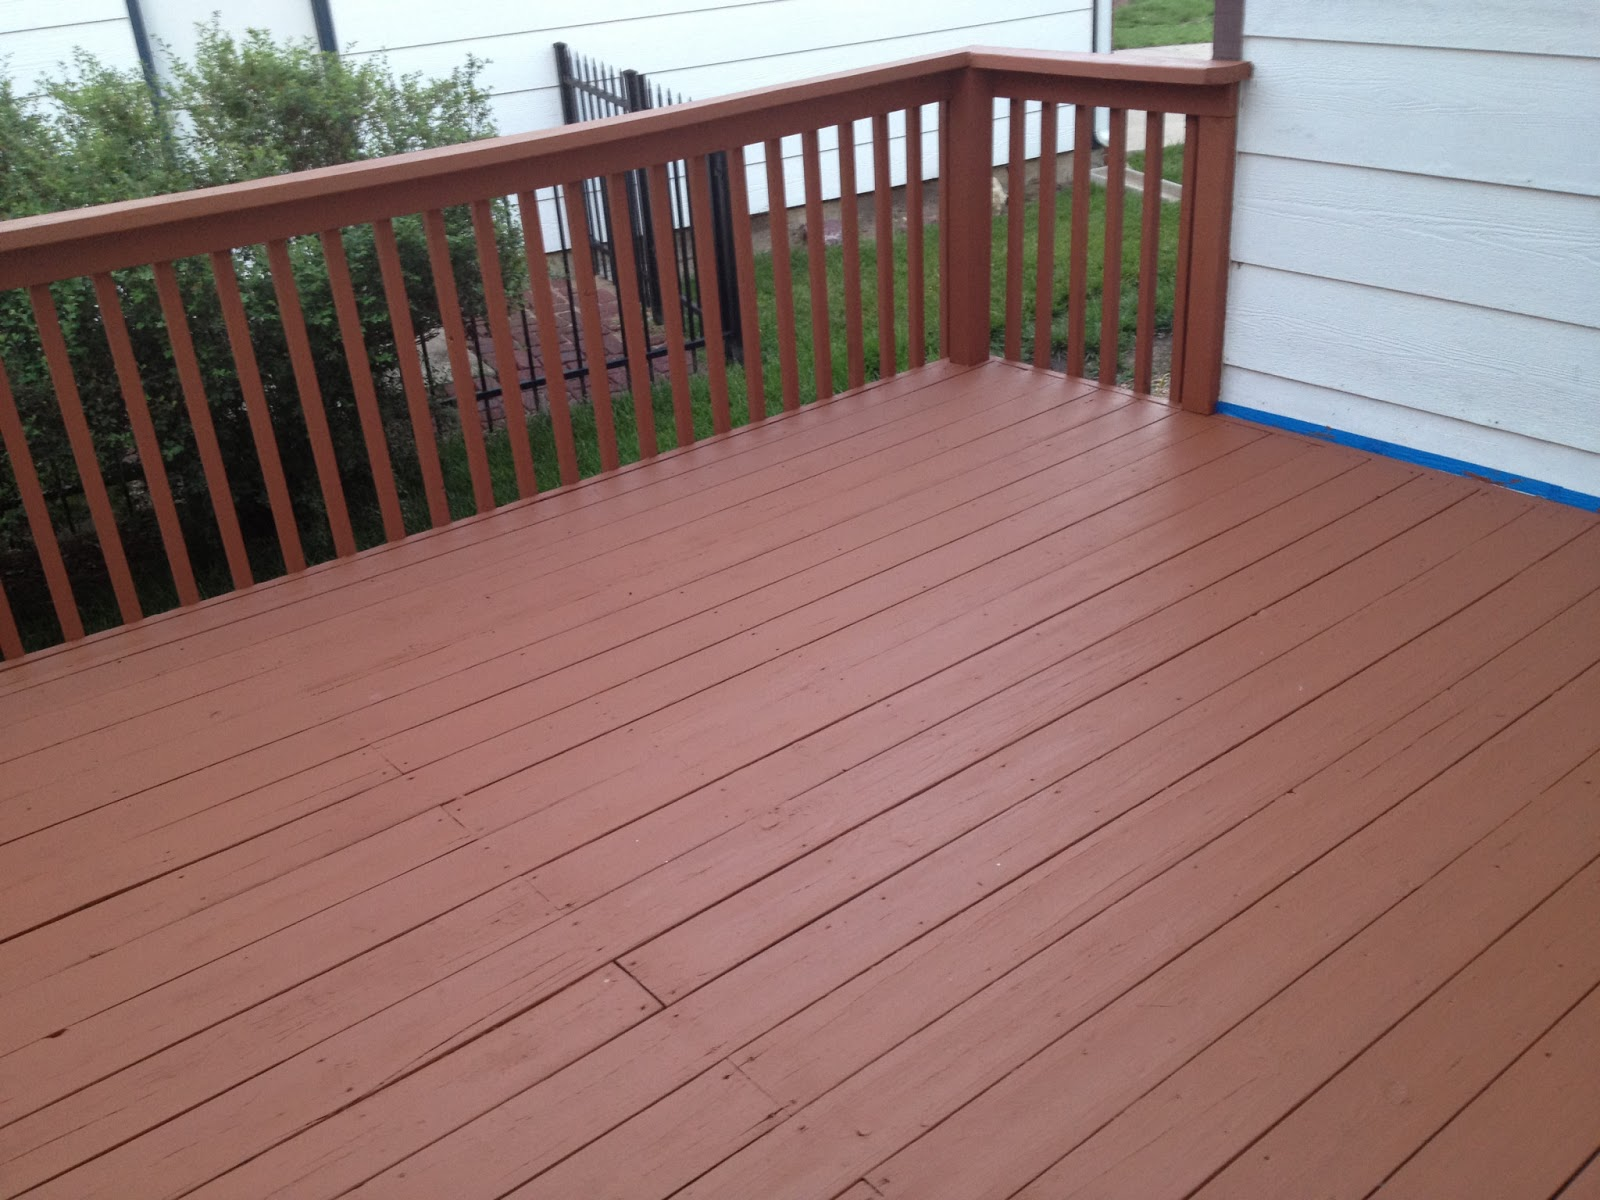 Behr Deck Over | Home Depot Behr Deck Over | Deckover Paint